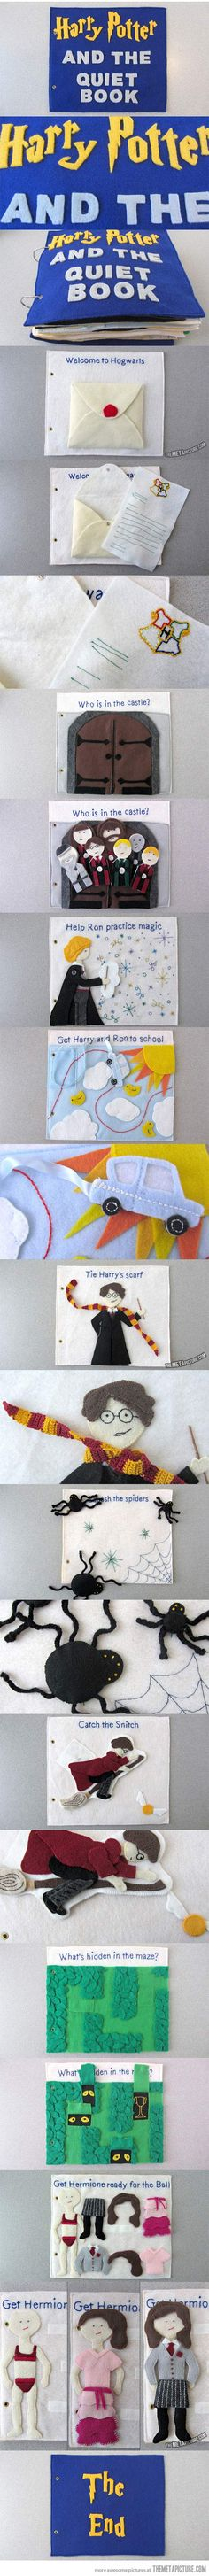 someday when i have kids, if i cant find this to buy, i will spend the millions of hours necessary to make this for them